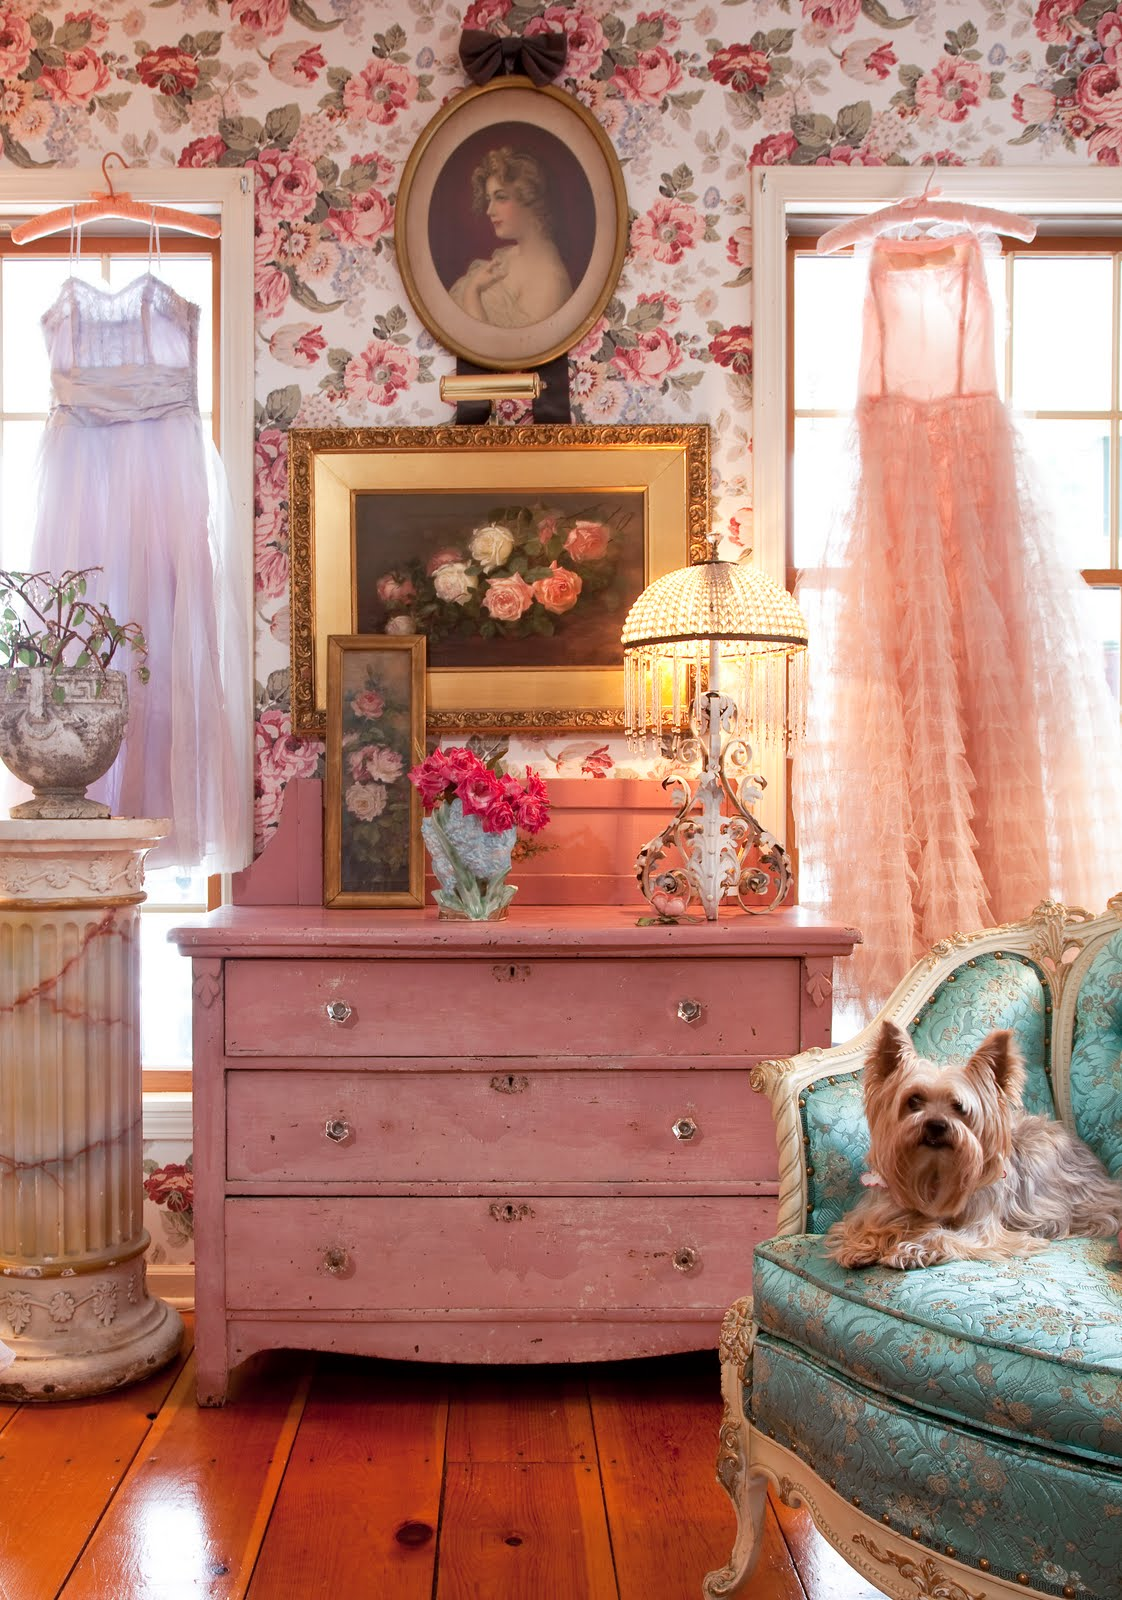 Vintage Chic Home Decor Pin Up Decor Blast From The Past With 13 Pretty Spaces